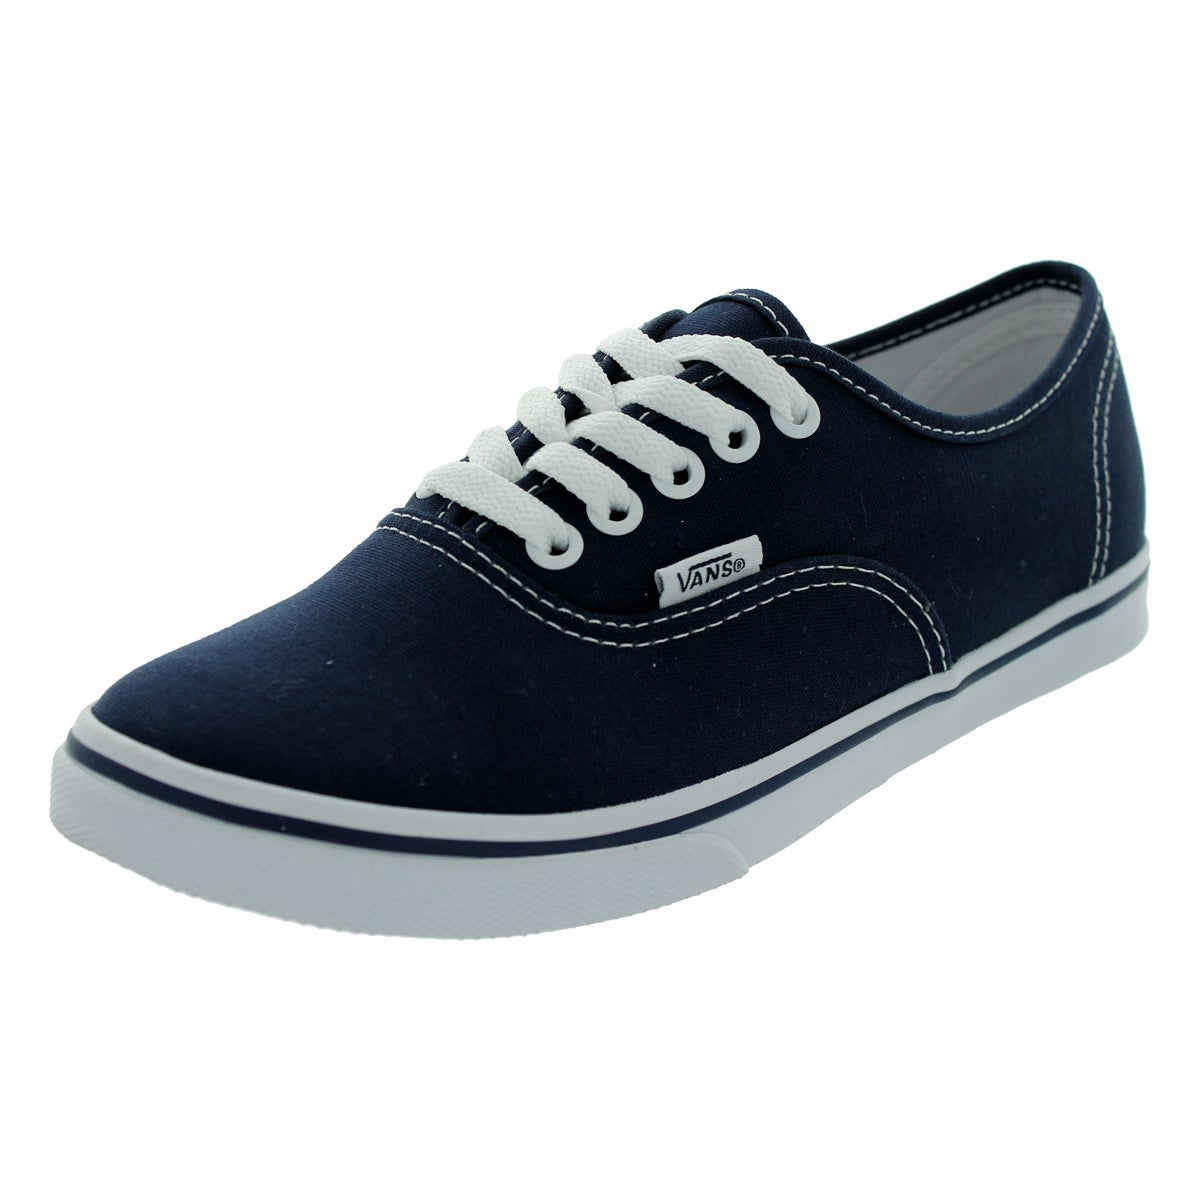 Vans Men's Authentic Lo Pro Navy/True White Canvas Skate ...